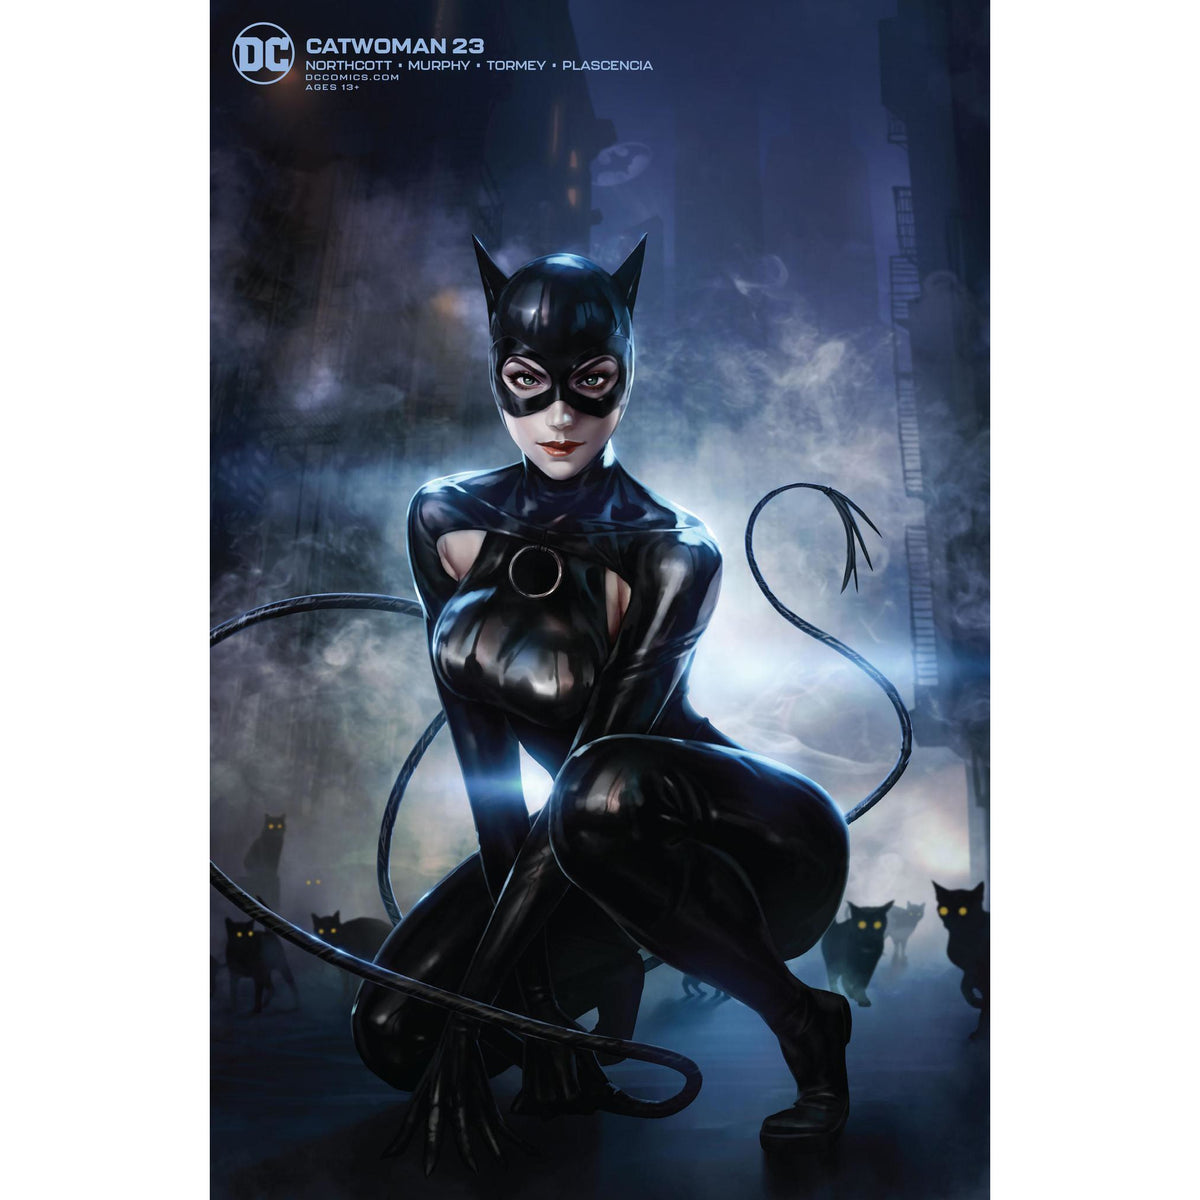 CATWOMAN 23 - PICK YOUR COVER - DC COMICS - MURPHY - LEE WOO-CHUL